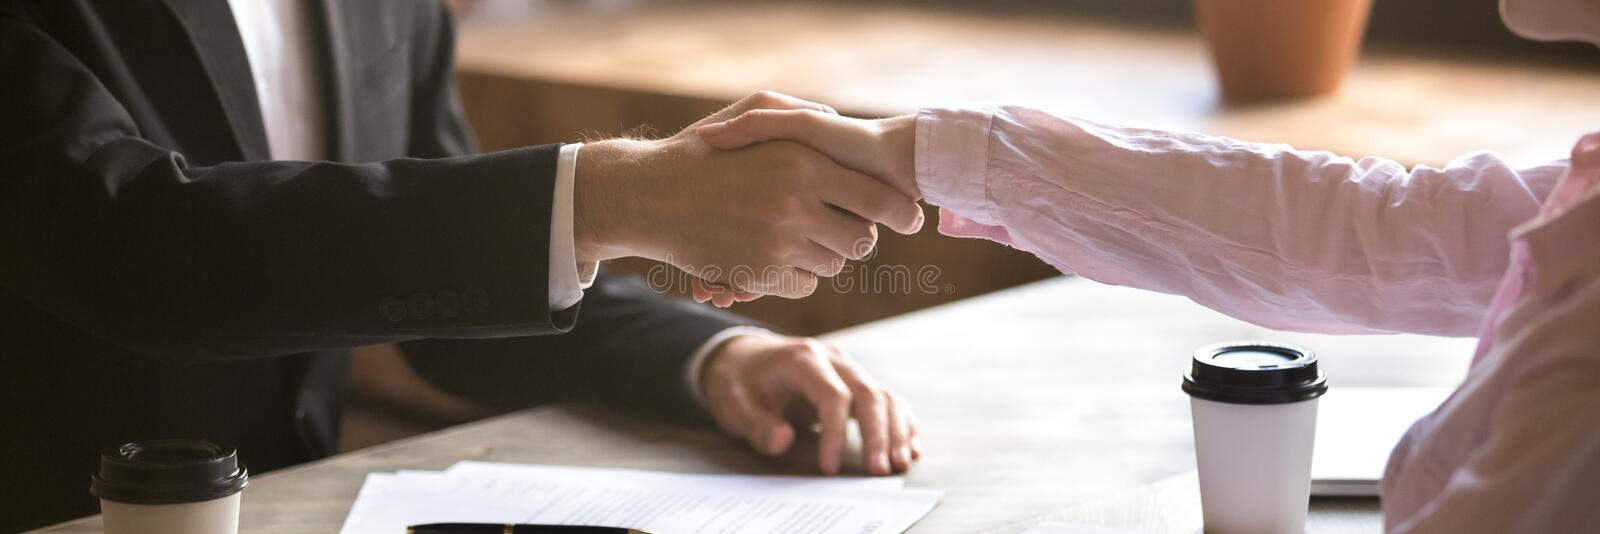 Horizontal photo closeup hands of businessman and businesswoman shaking hands. Horizontal photo close up hands two people businessman businesswoman shake hands royalty free stock photo